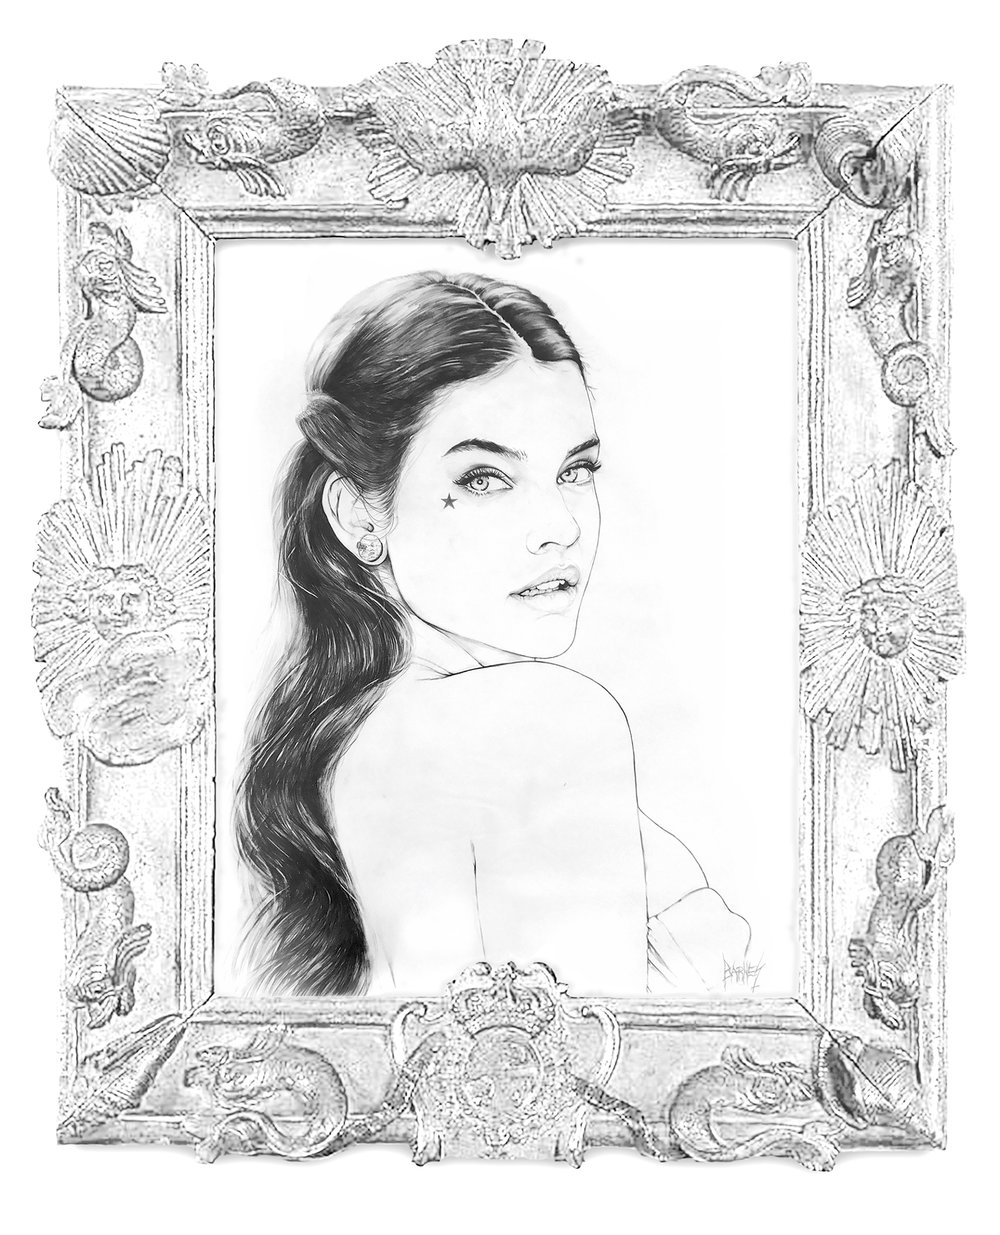 BBKUNST-Art-Artist-Bryan-Barnes-Pencil-Art-Drawing_Barbara_Palvin_Barbara-1_Frame.jpg